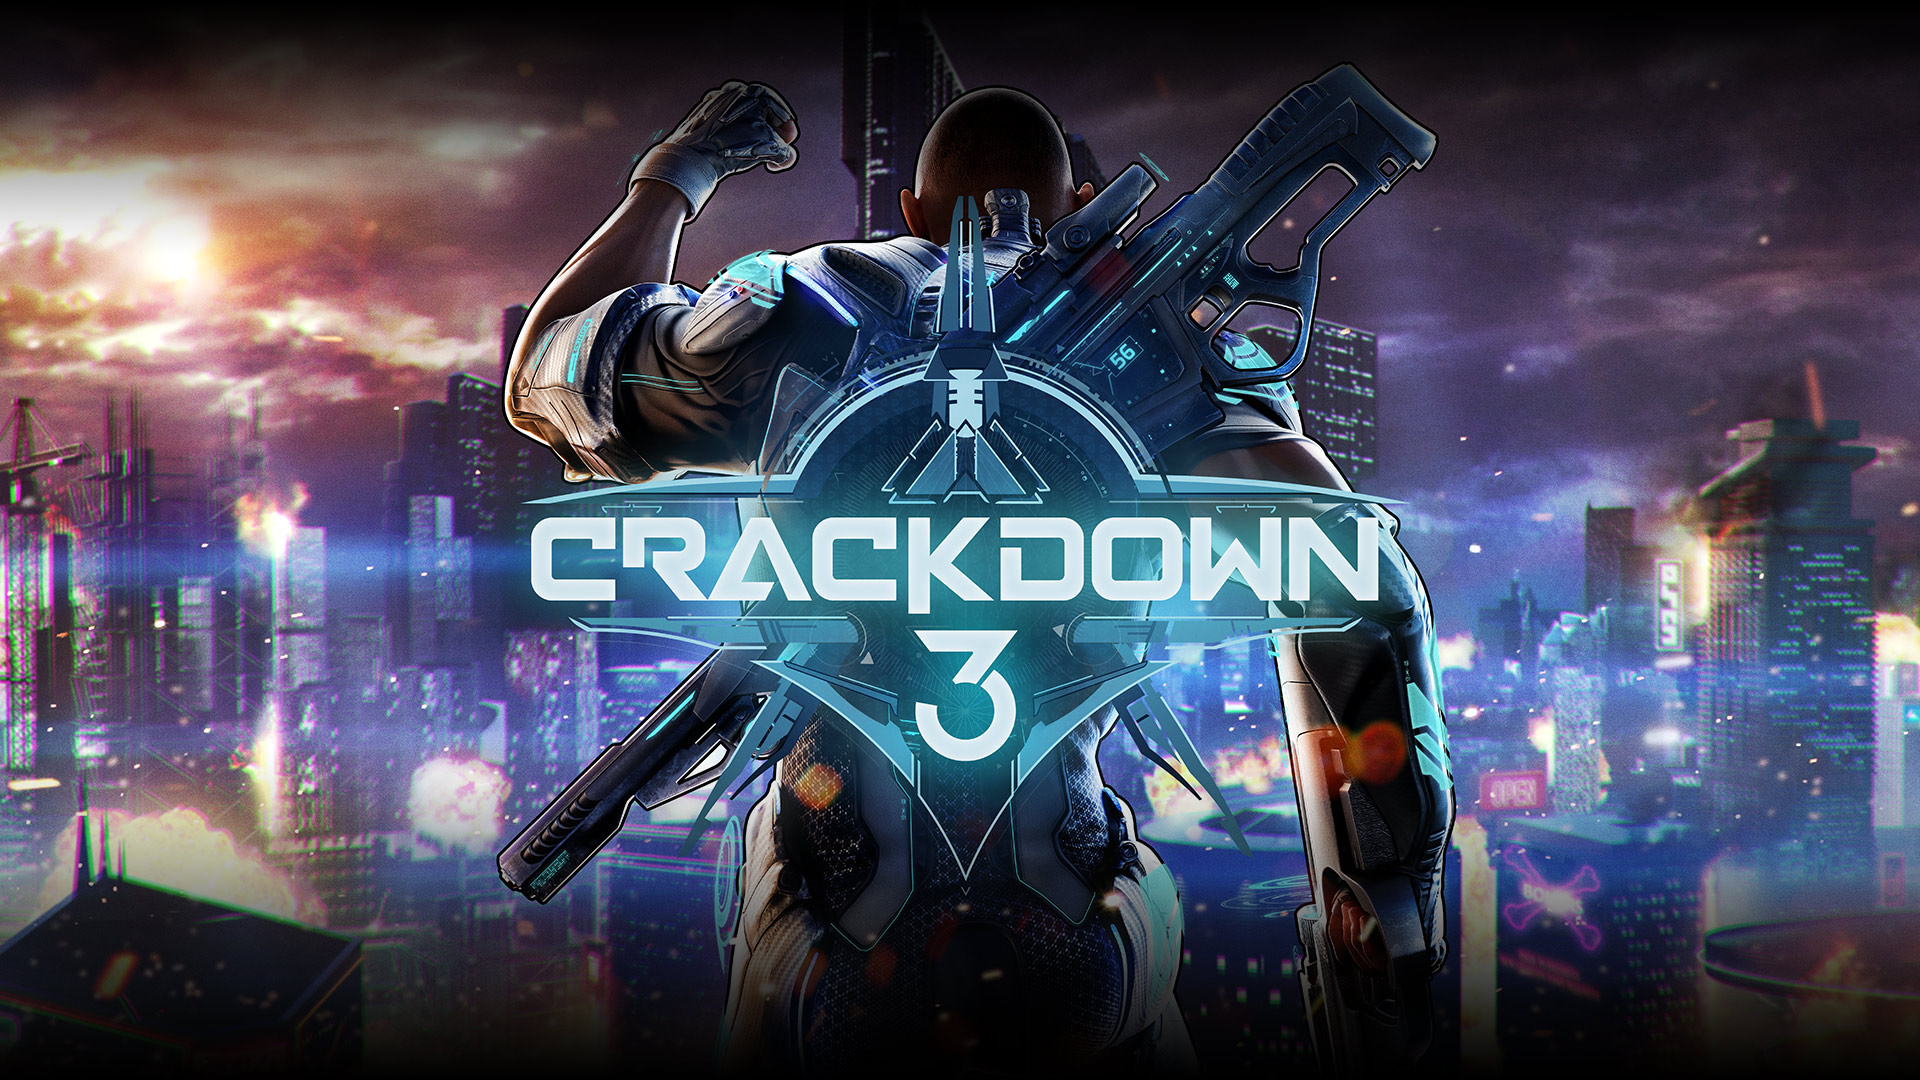 Crackdown 3 – hero-billede, Commander Jaxon set bagfra, der hæver sin næve over en byscene.